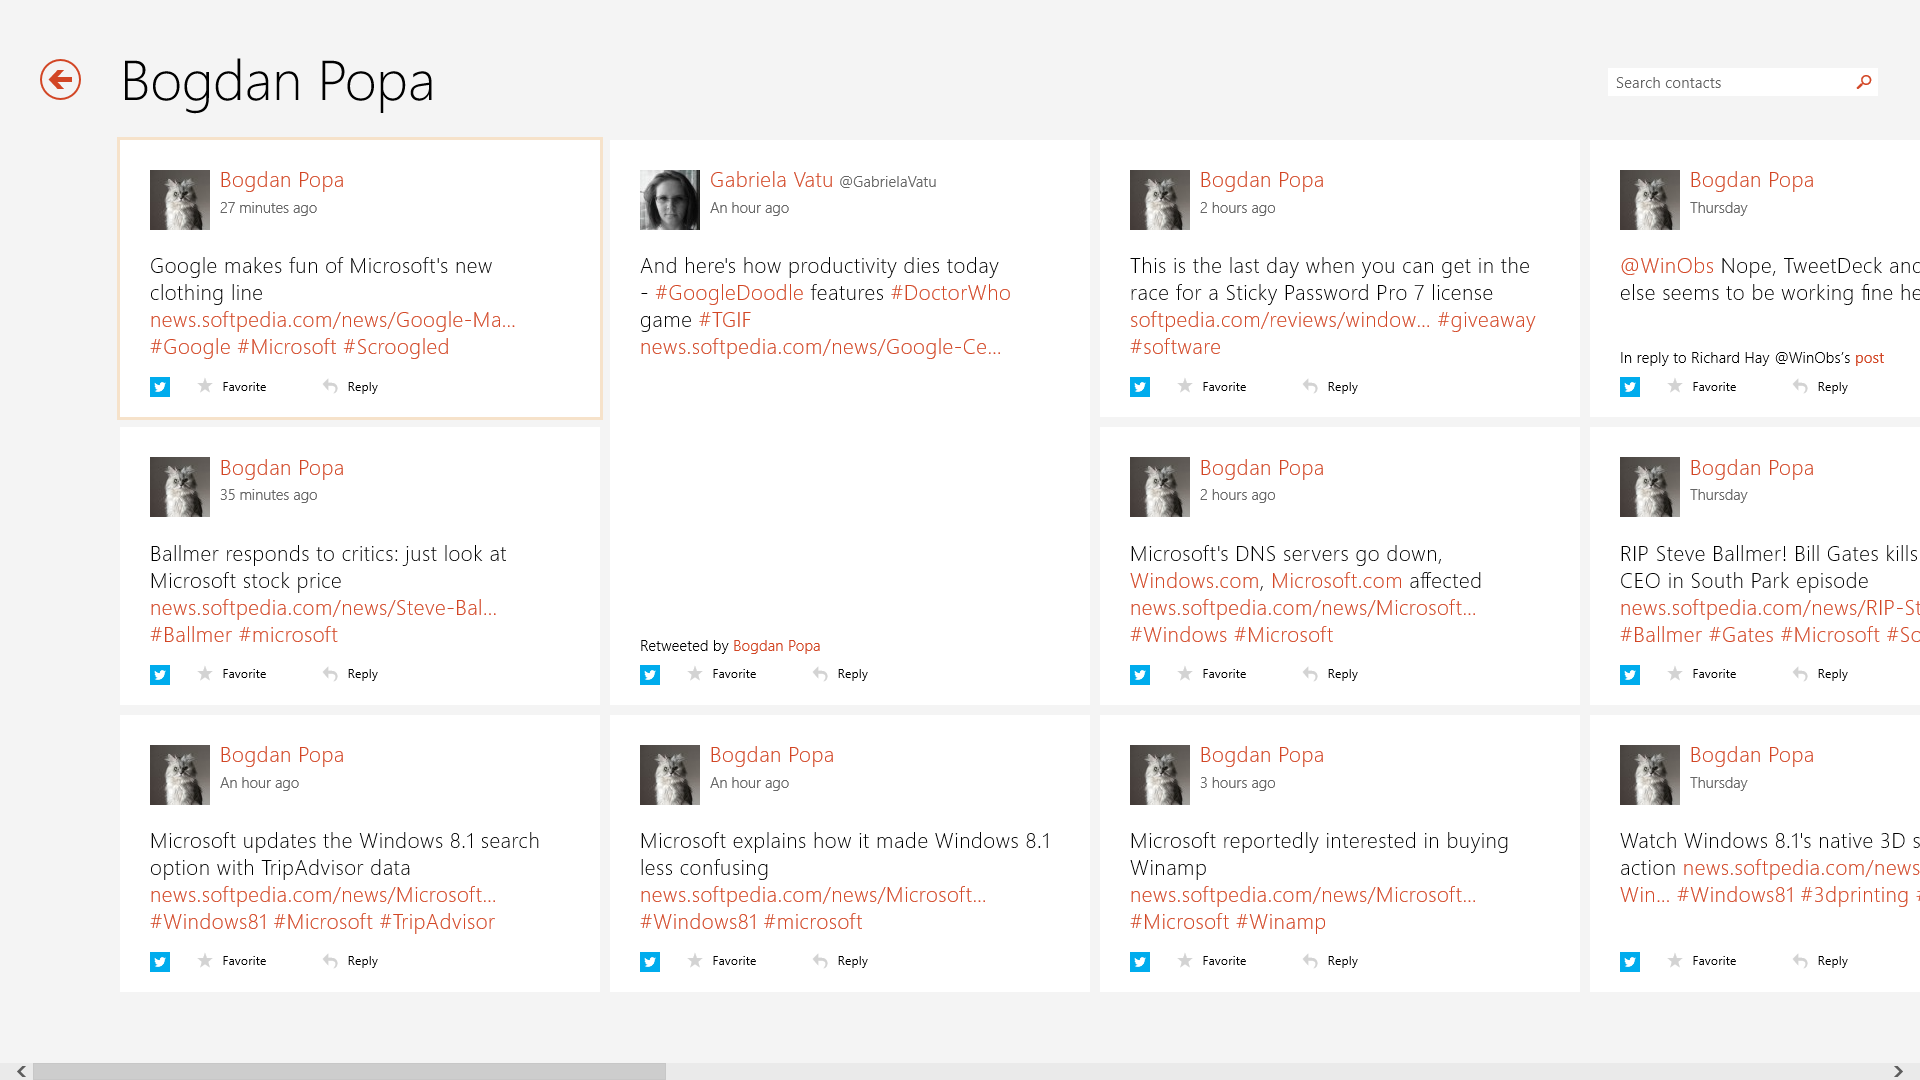 Twitter for windows 8 now available in the windows store | windows.